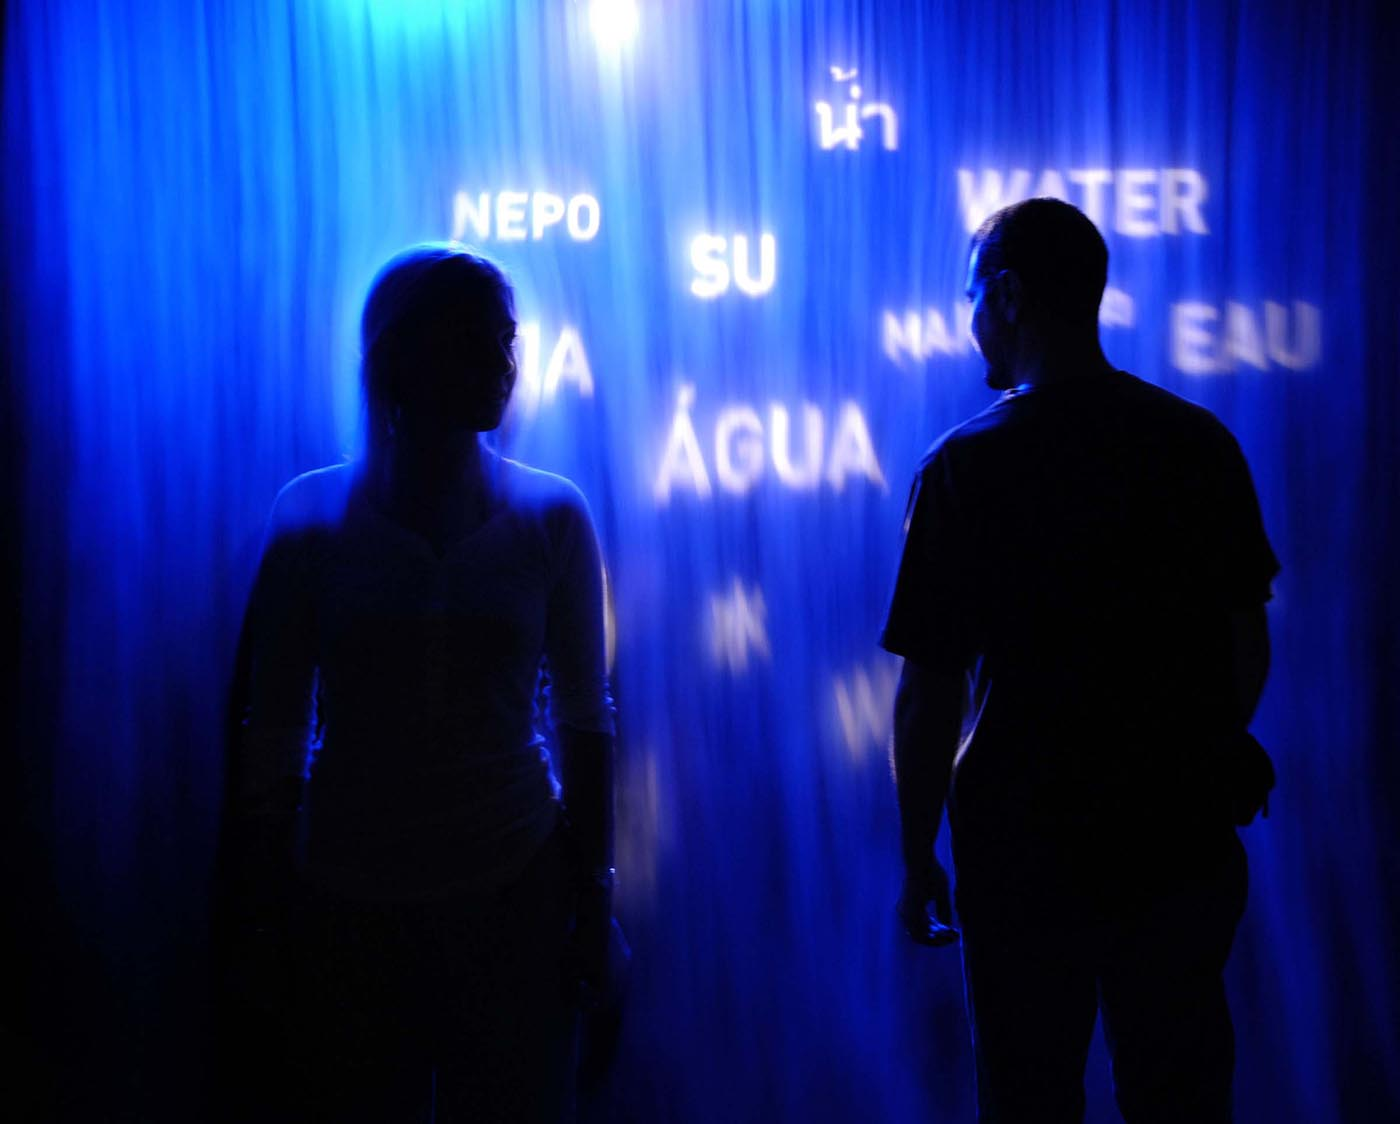 A man and woman shown in silhouette, standing in front of a blue rippled screen, with the words 'NEPO', 'SU', 'AGUA', 'EAU', 'WATER' and other partially visible text in white.